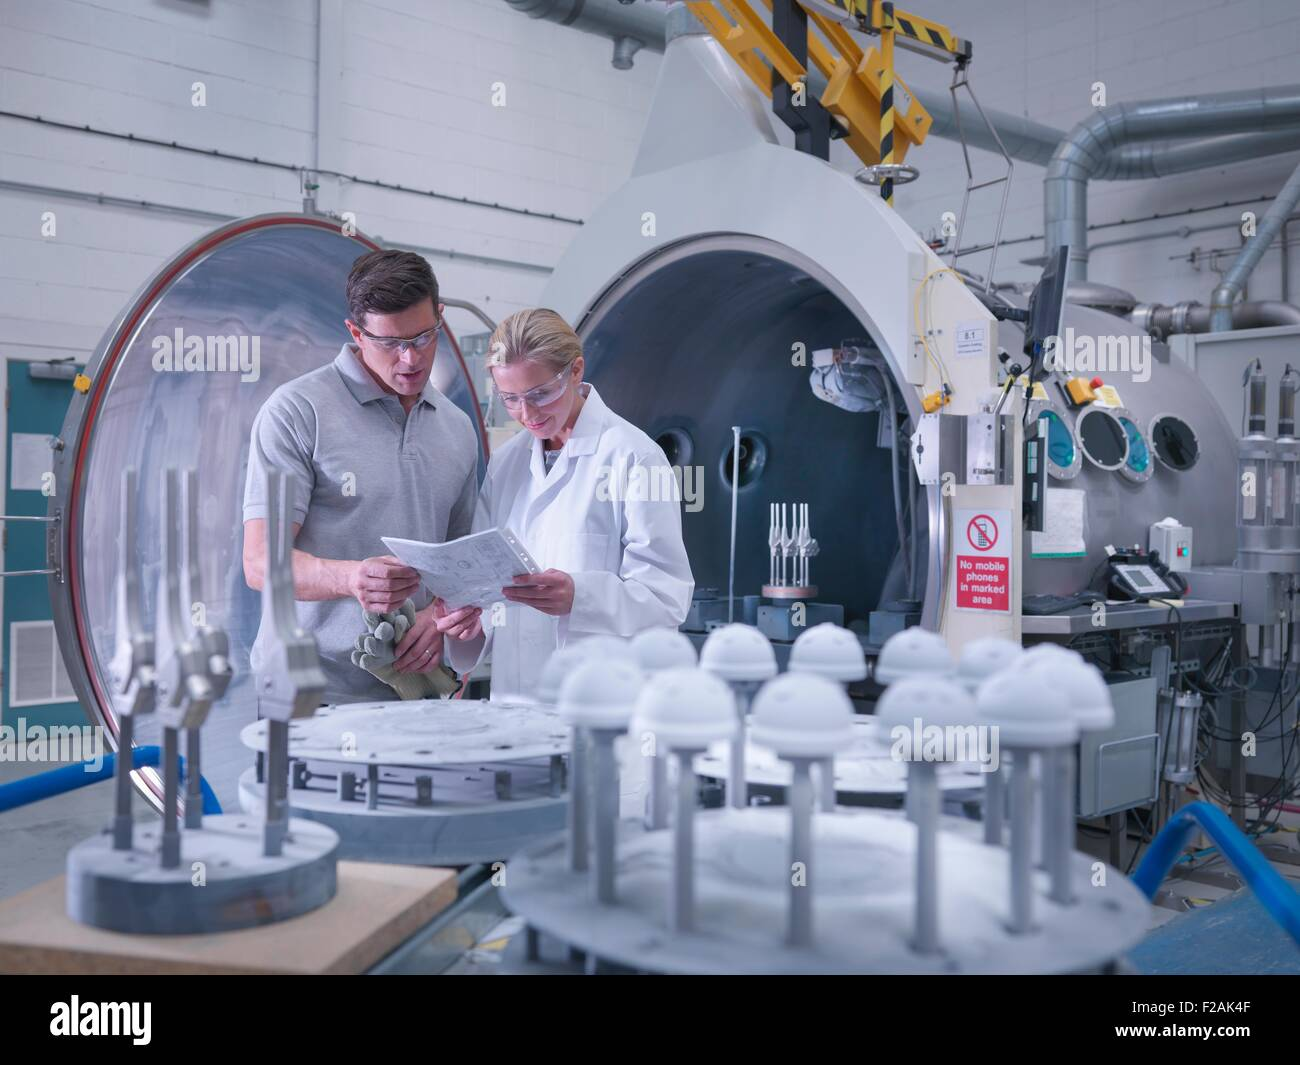 Engineers with ceramic coating machine, coating artificial hip joints in orthopaedic factory - Stock Image